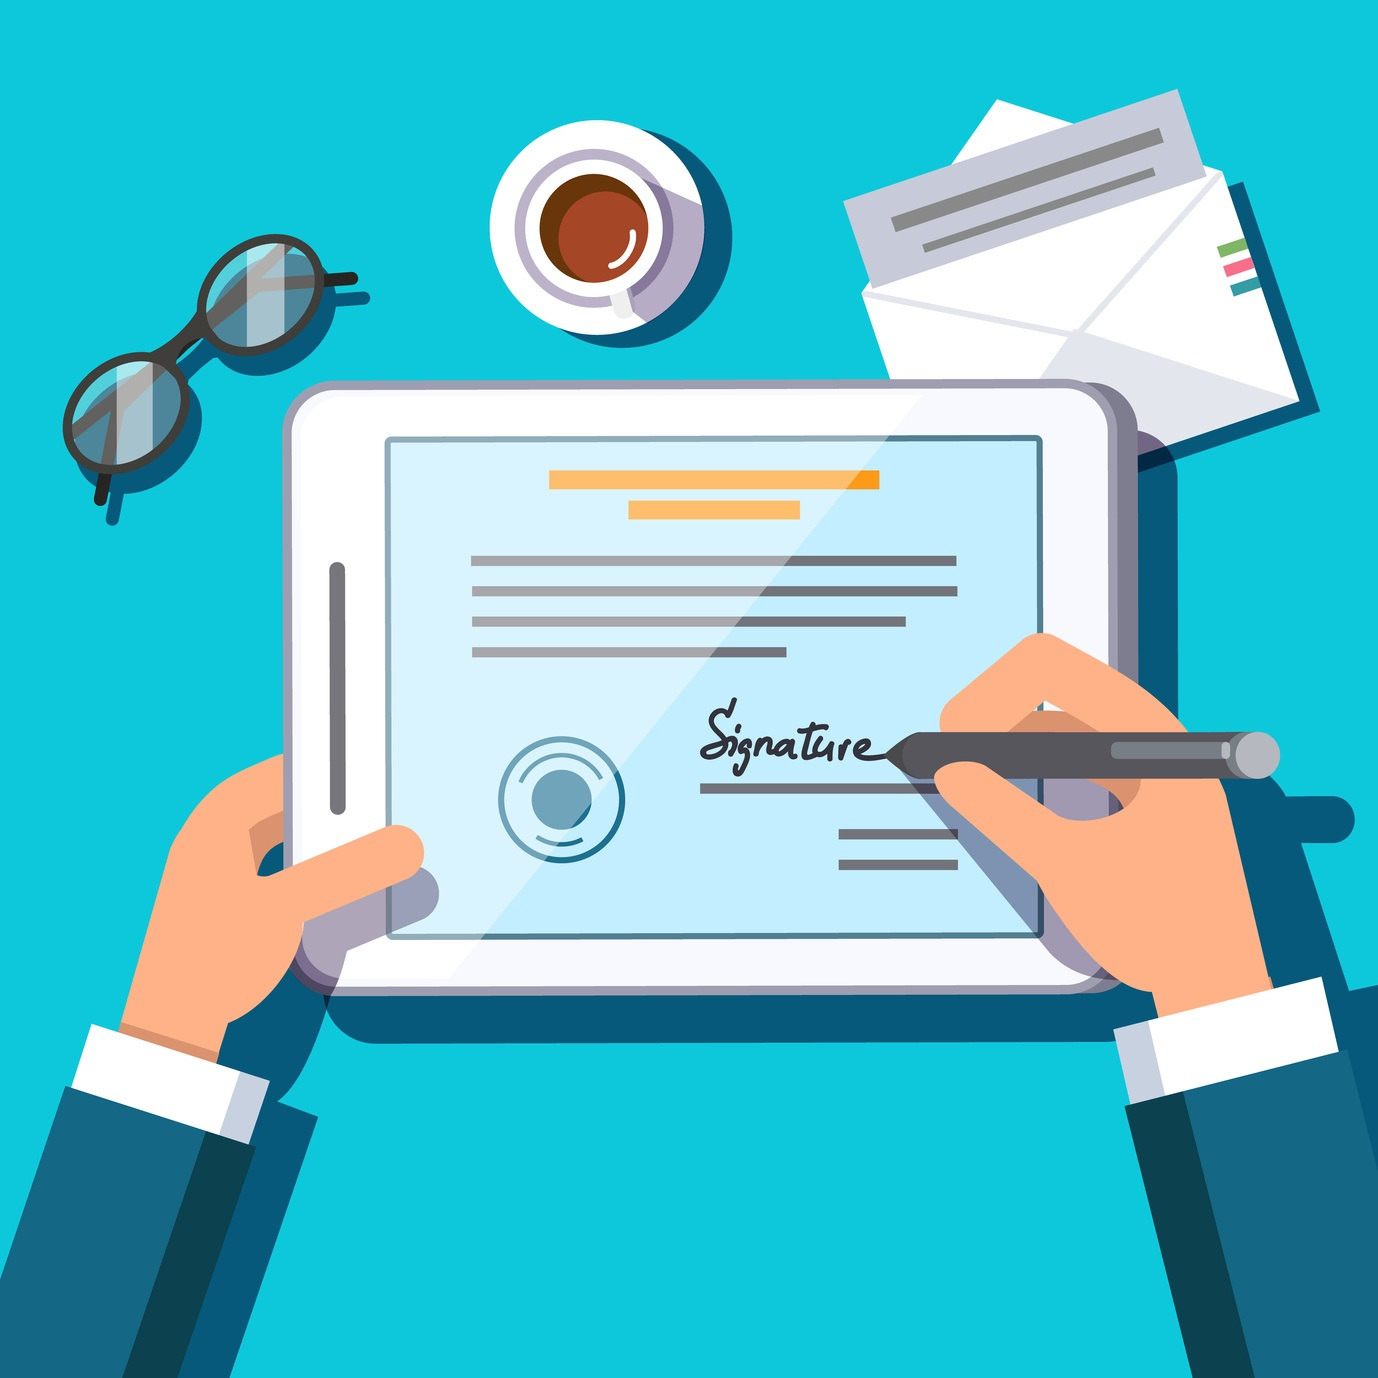 electronic signatures essay Finally, the paper will suggest that although digital signatures will likely  simon  pockley asserts in his essay lest we forget that devices used to store,.